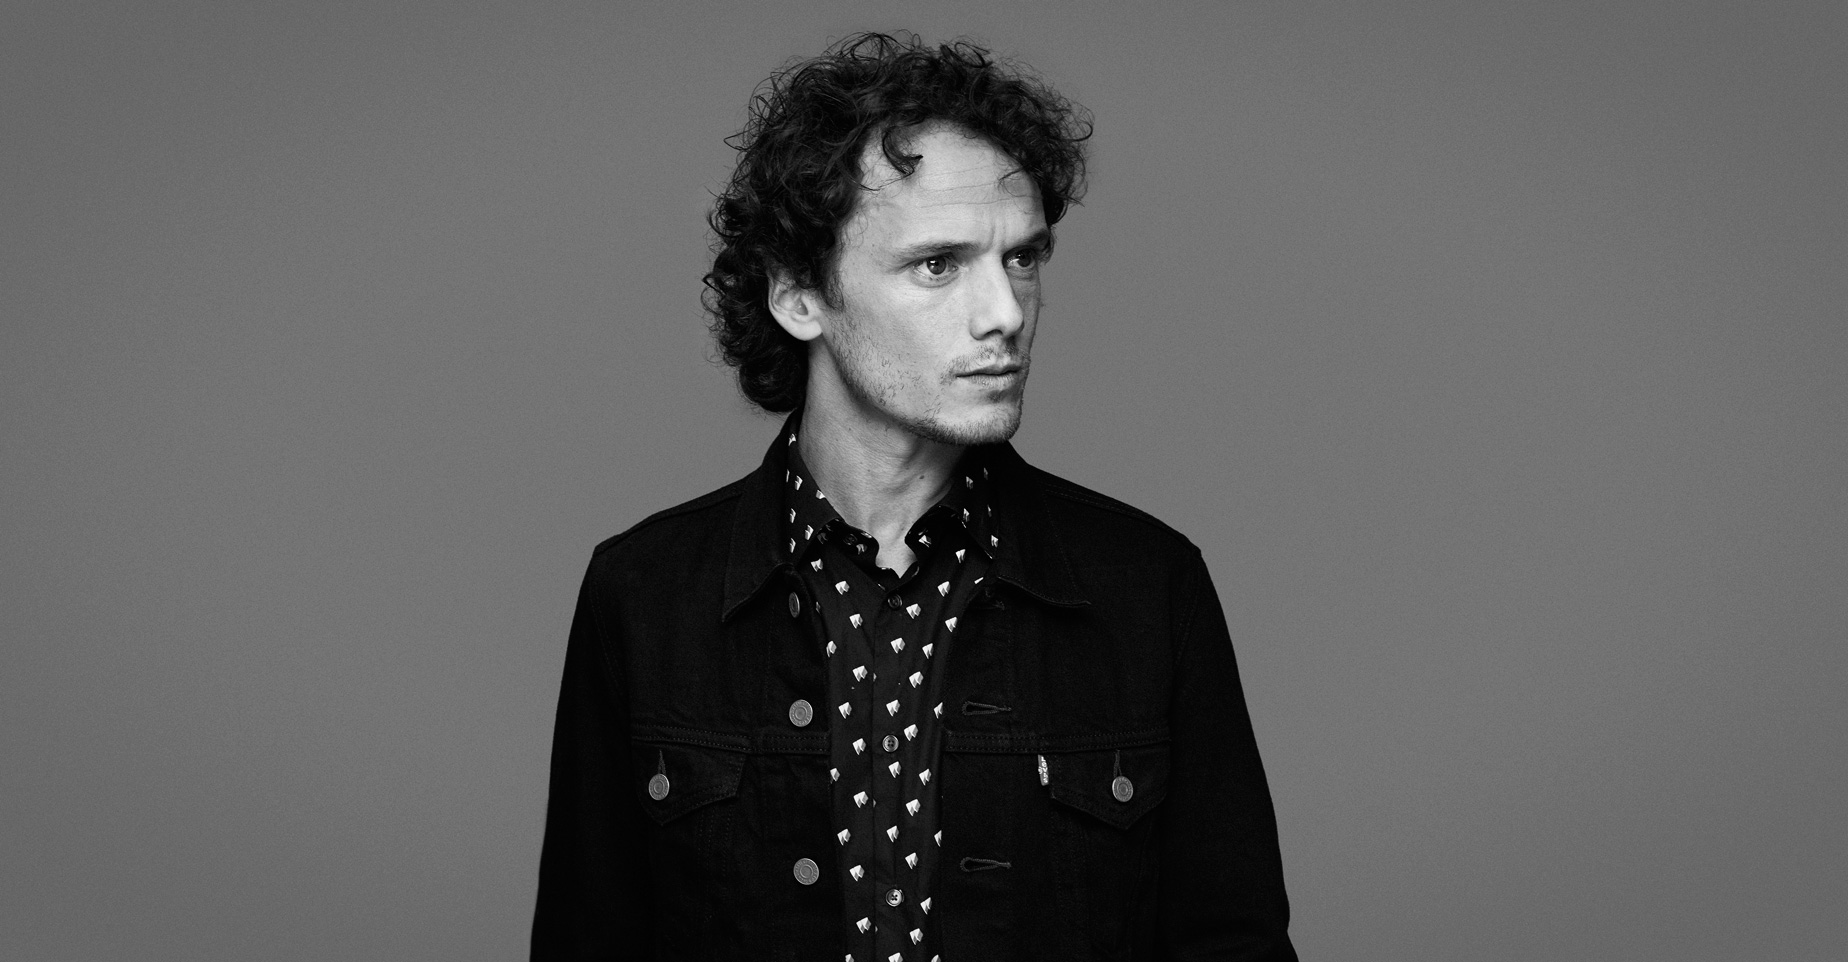 anton yelchin diedanton yelchin black and white, anton yelchin death, anton yelchin funeral, anton yelchin died, anton yelchin gif, anton yelchin смерть, anton yelchin speaking russian, anton yelchin parents, anton yelchin wiki, anton yelchin charlie bartlett, anton yelchin vk, anton yelchin trollhunters, anton yelchin twitter, anton yelchin height, anton yelchin gif hunt, anton yelchin and felicity jones, anton yelchin movies, anton yelchin умер, anton yelchin imdb, anton yelchin jeep